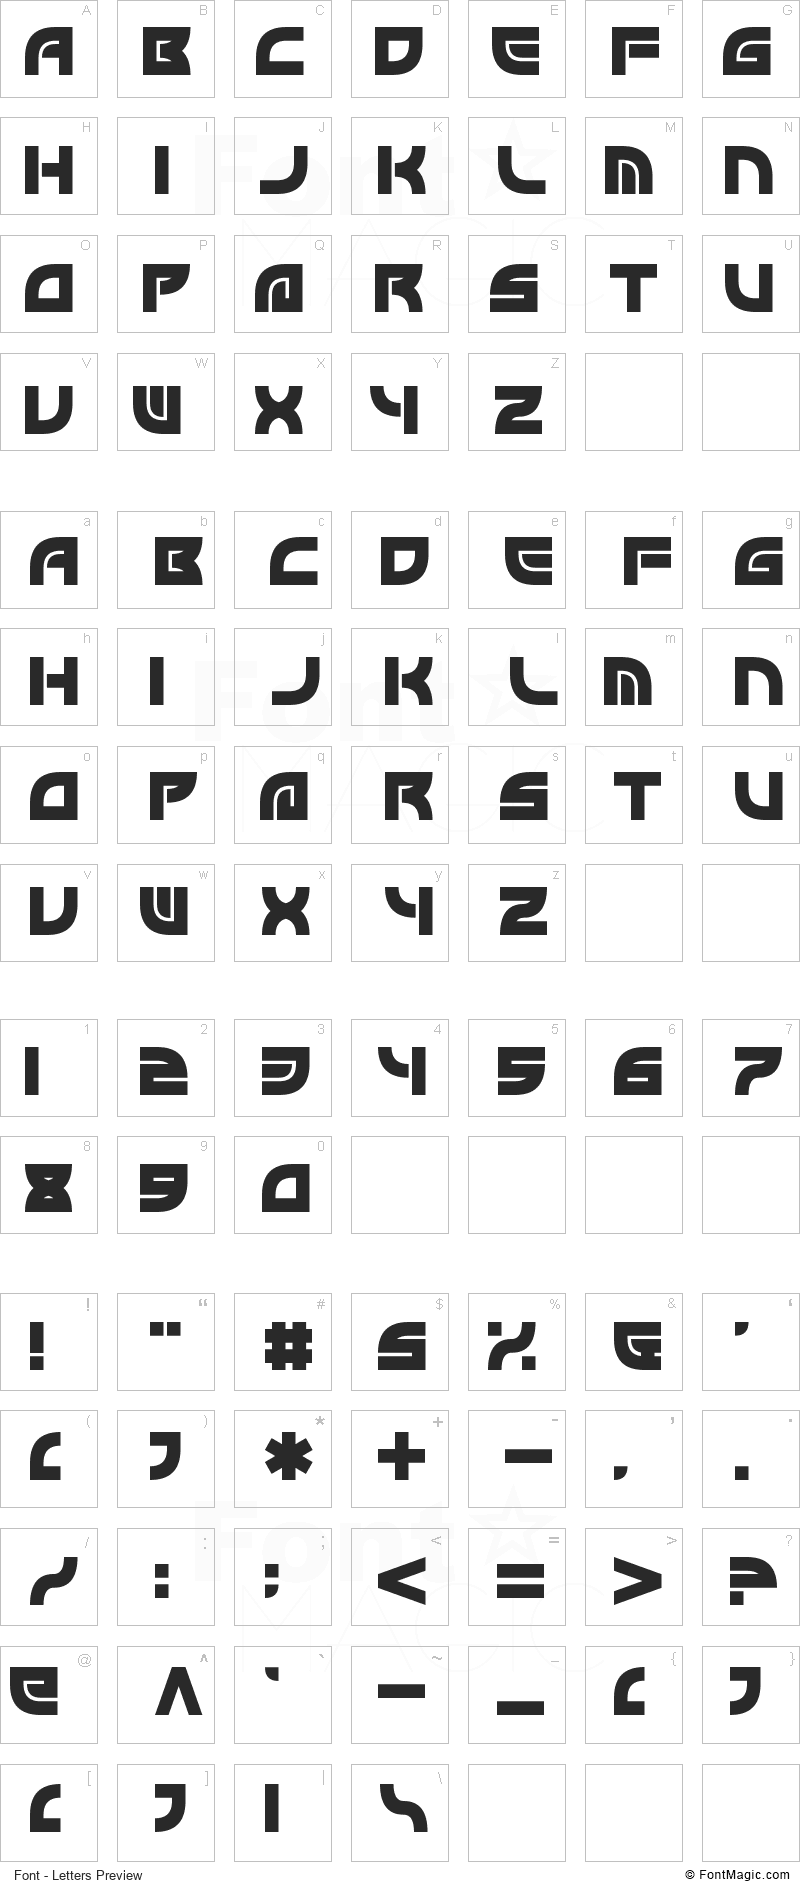 Byron Font - All Latters Preview Chart